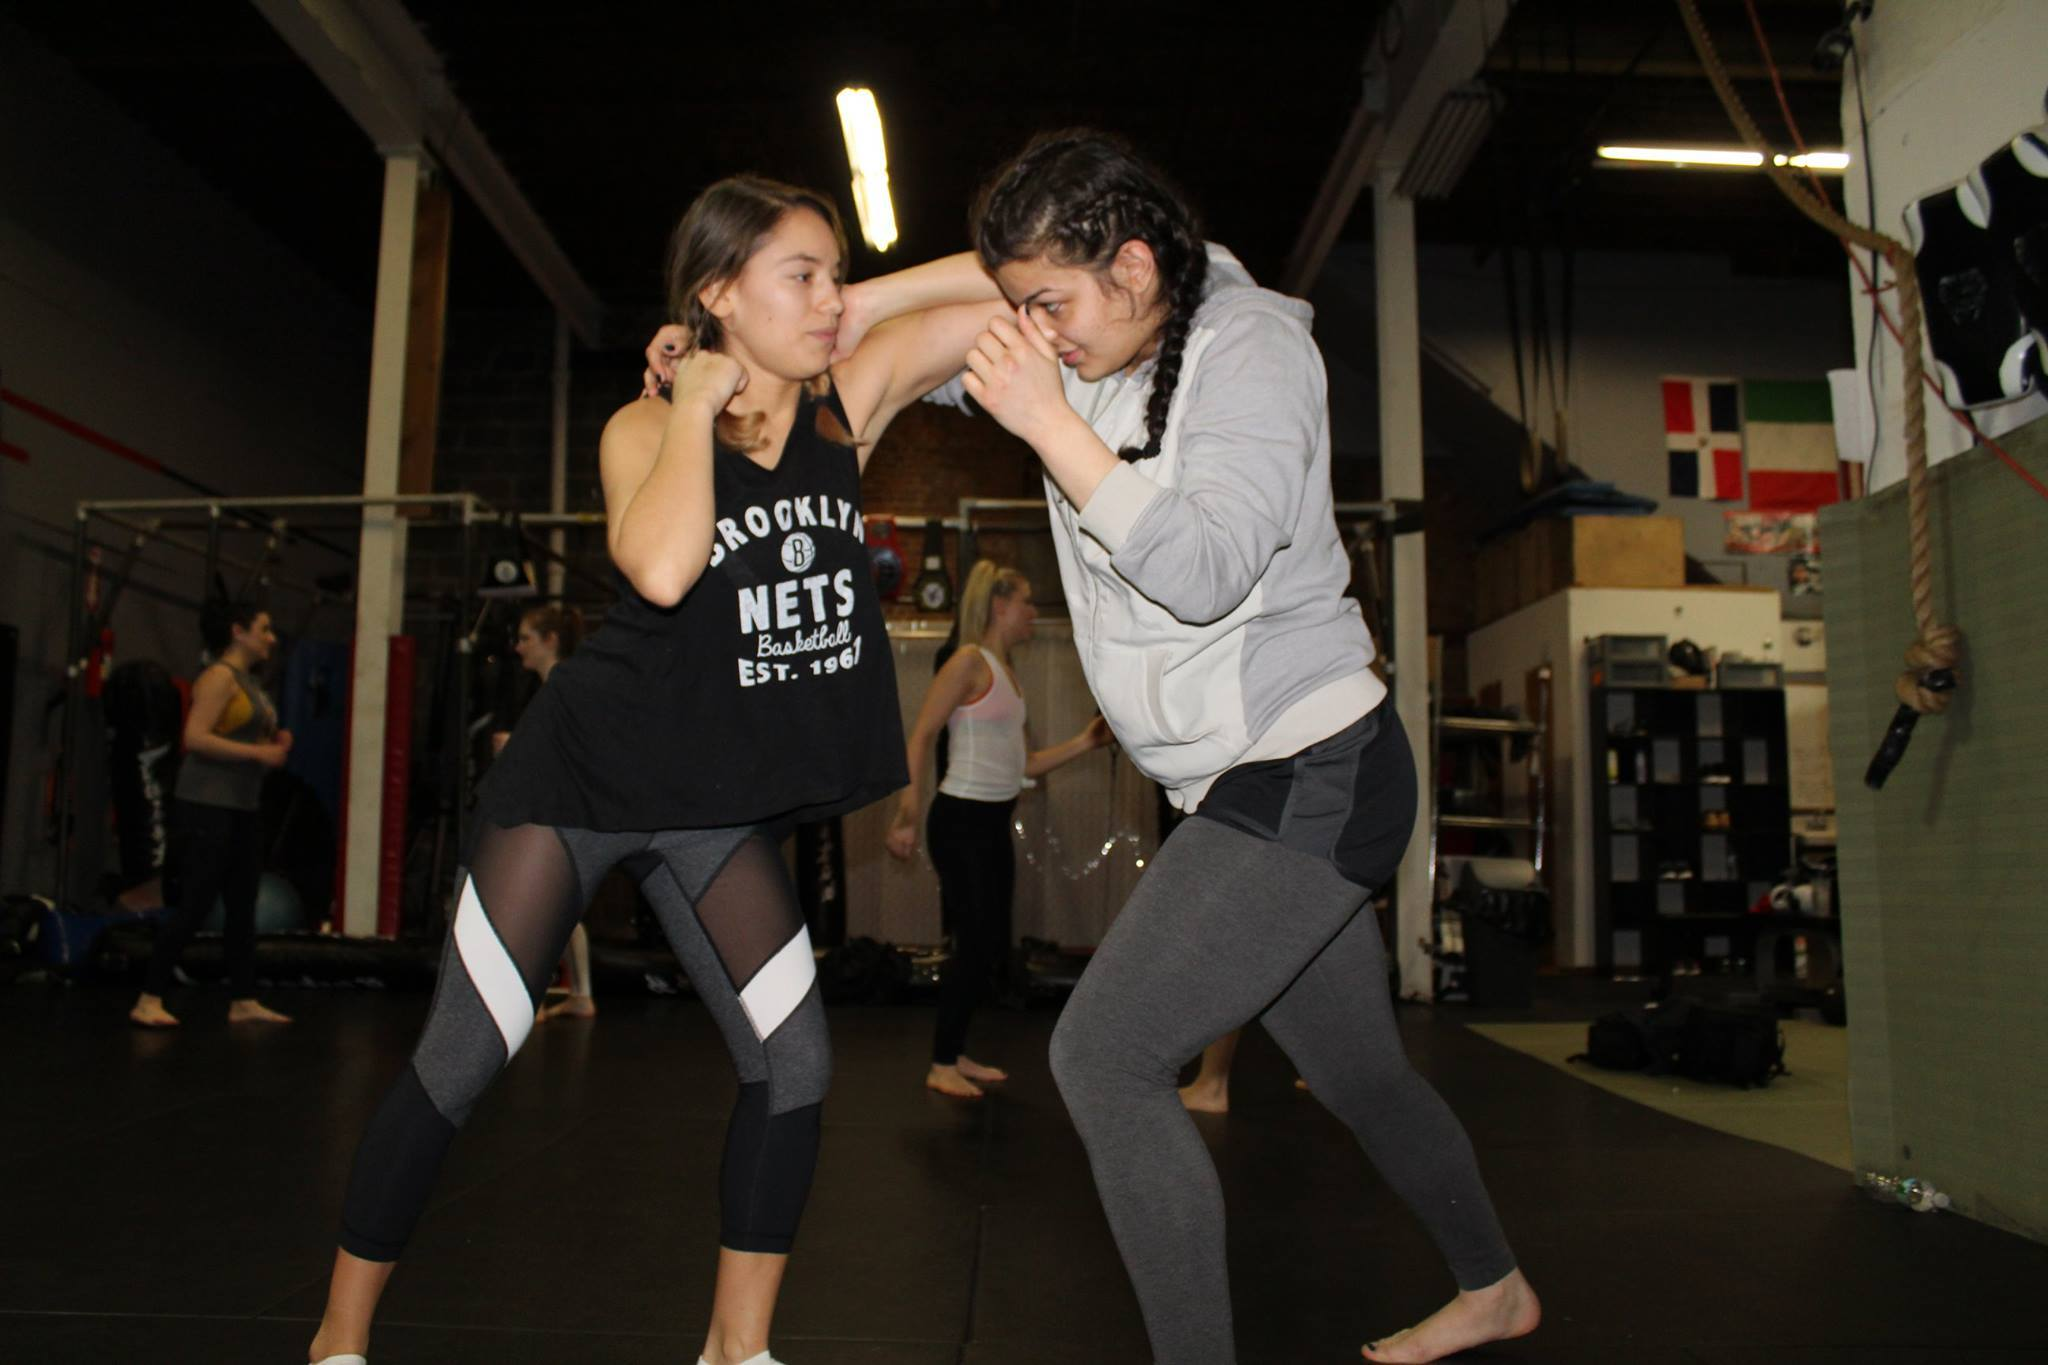 Women can get free self-defense classes at this gym in Brooklyn